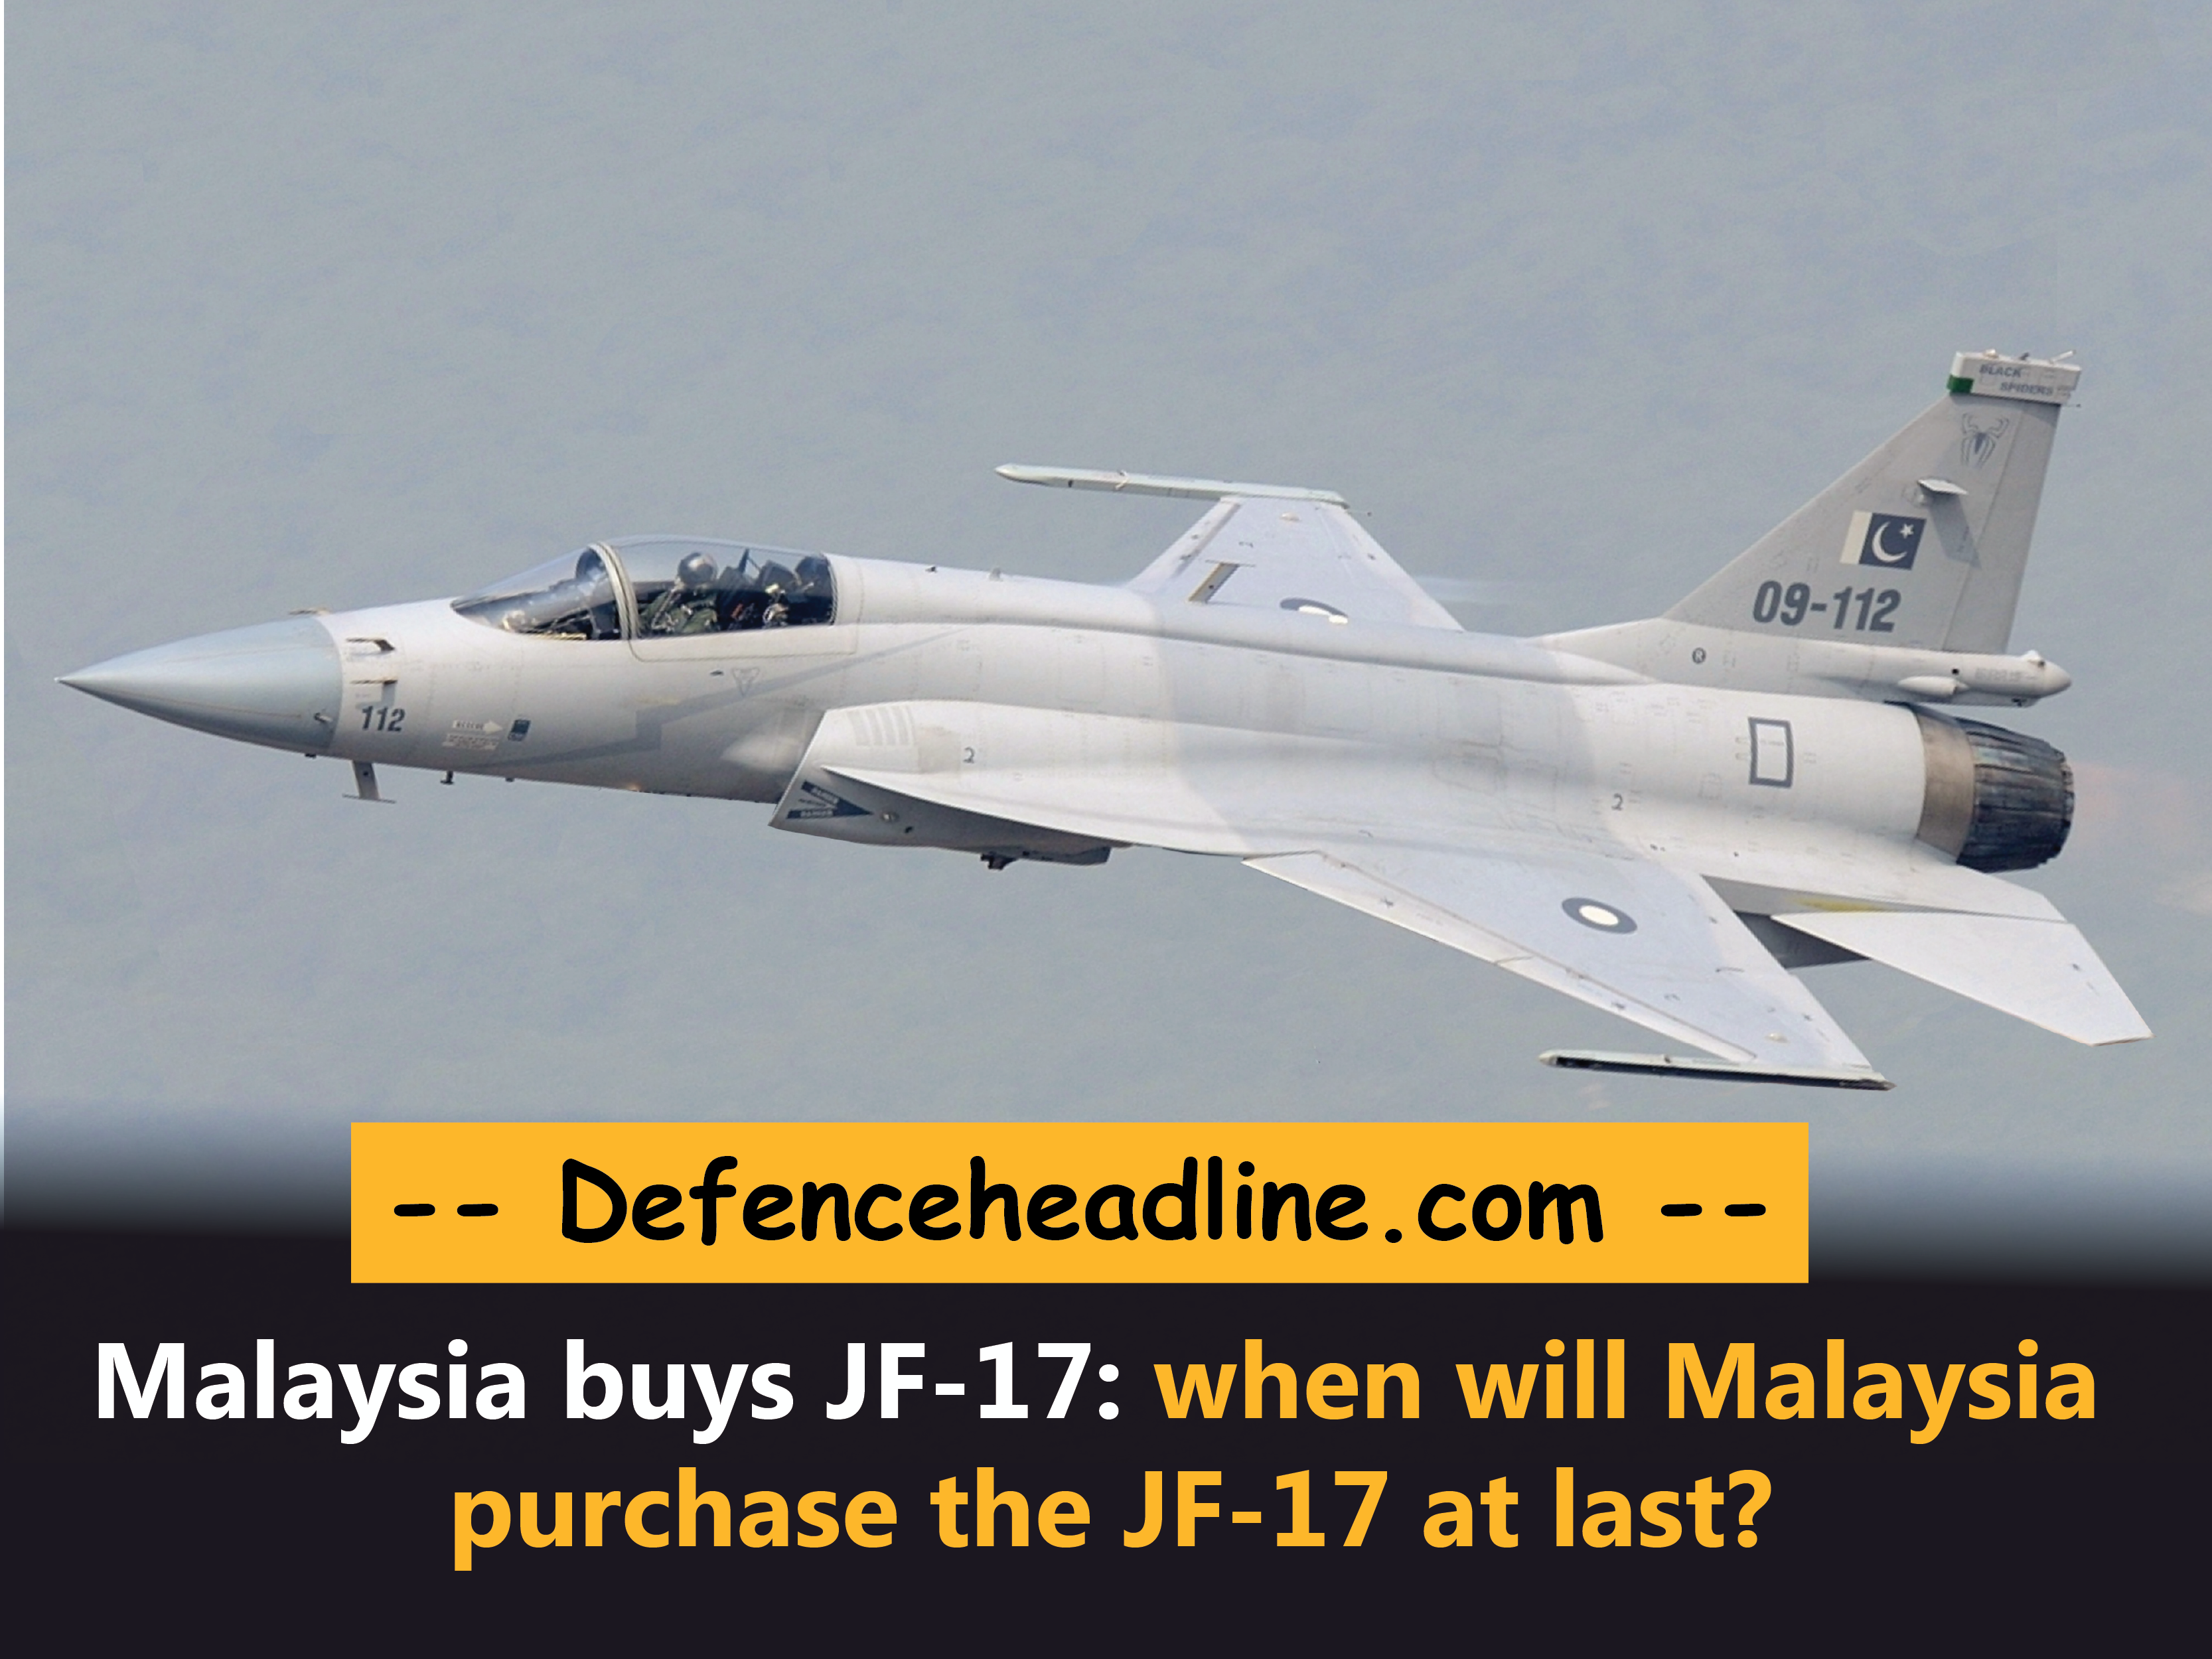 image of Malaysia buys JF-17 from Pakistan